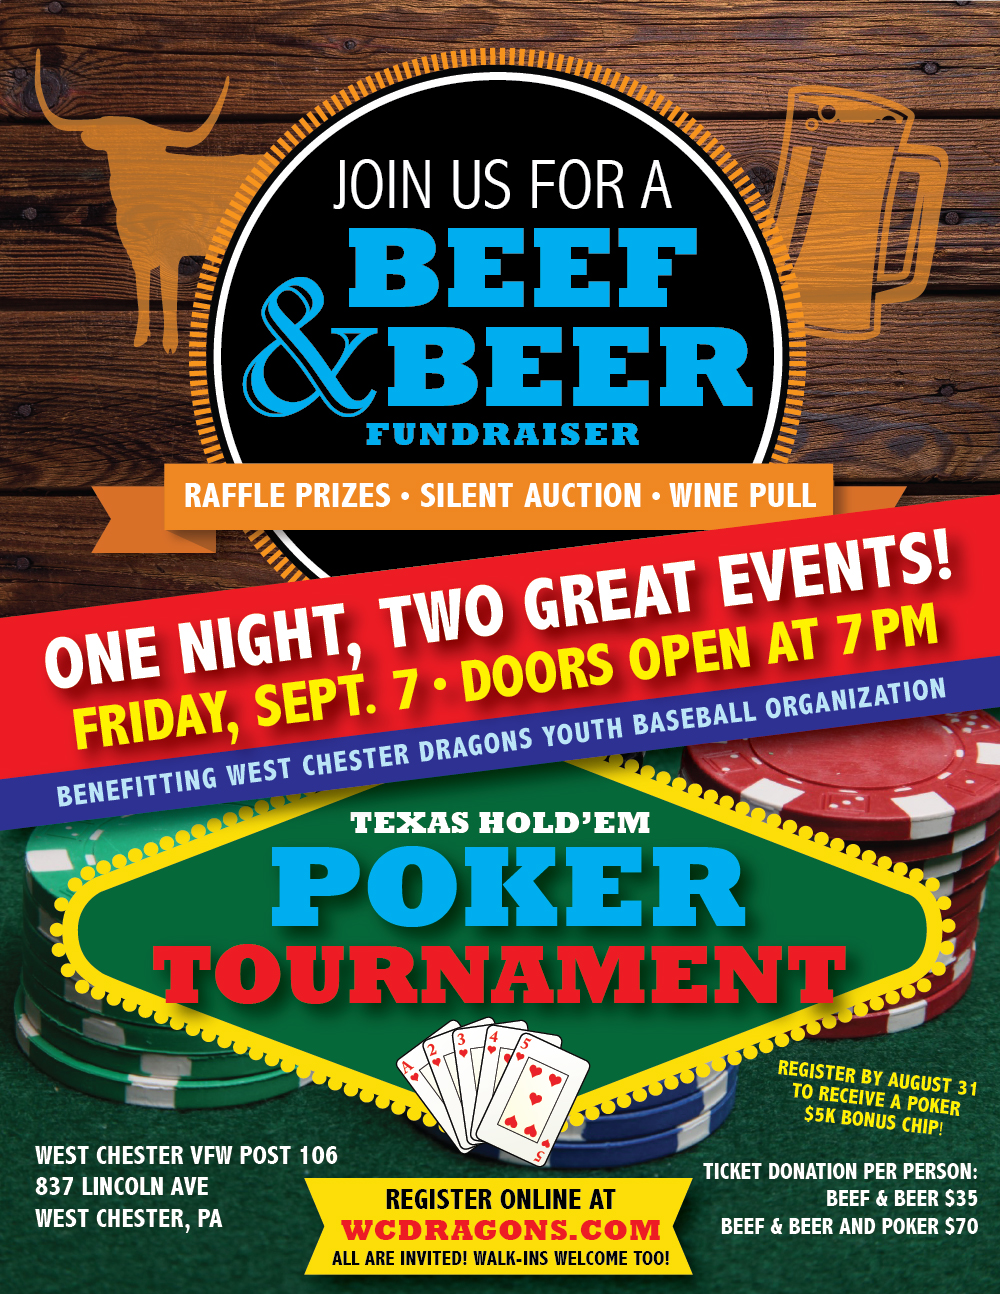 West Chester Dragons Beef & Beer and Texas Hold'Em Poker Tournament flyer